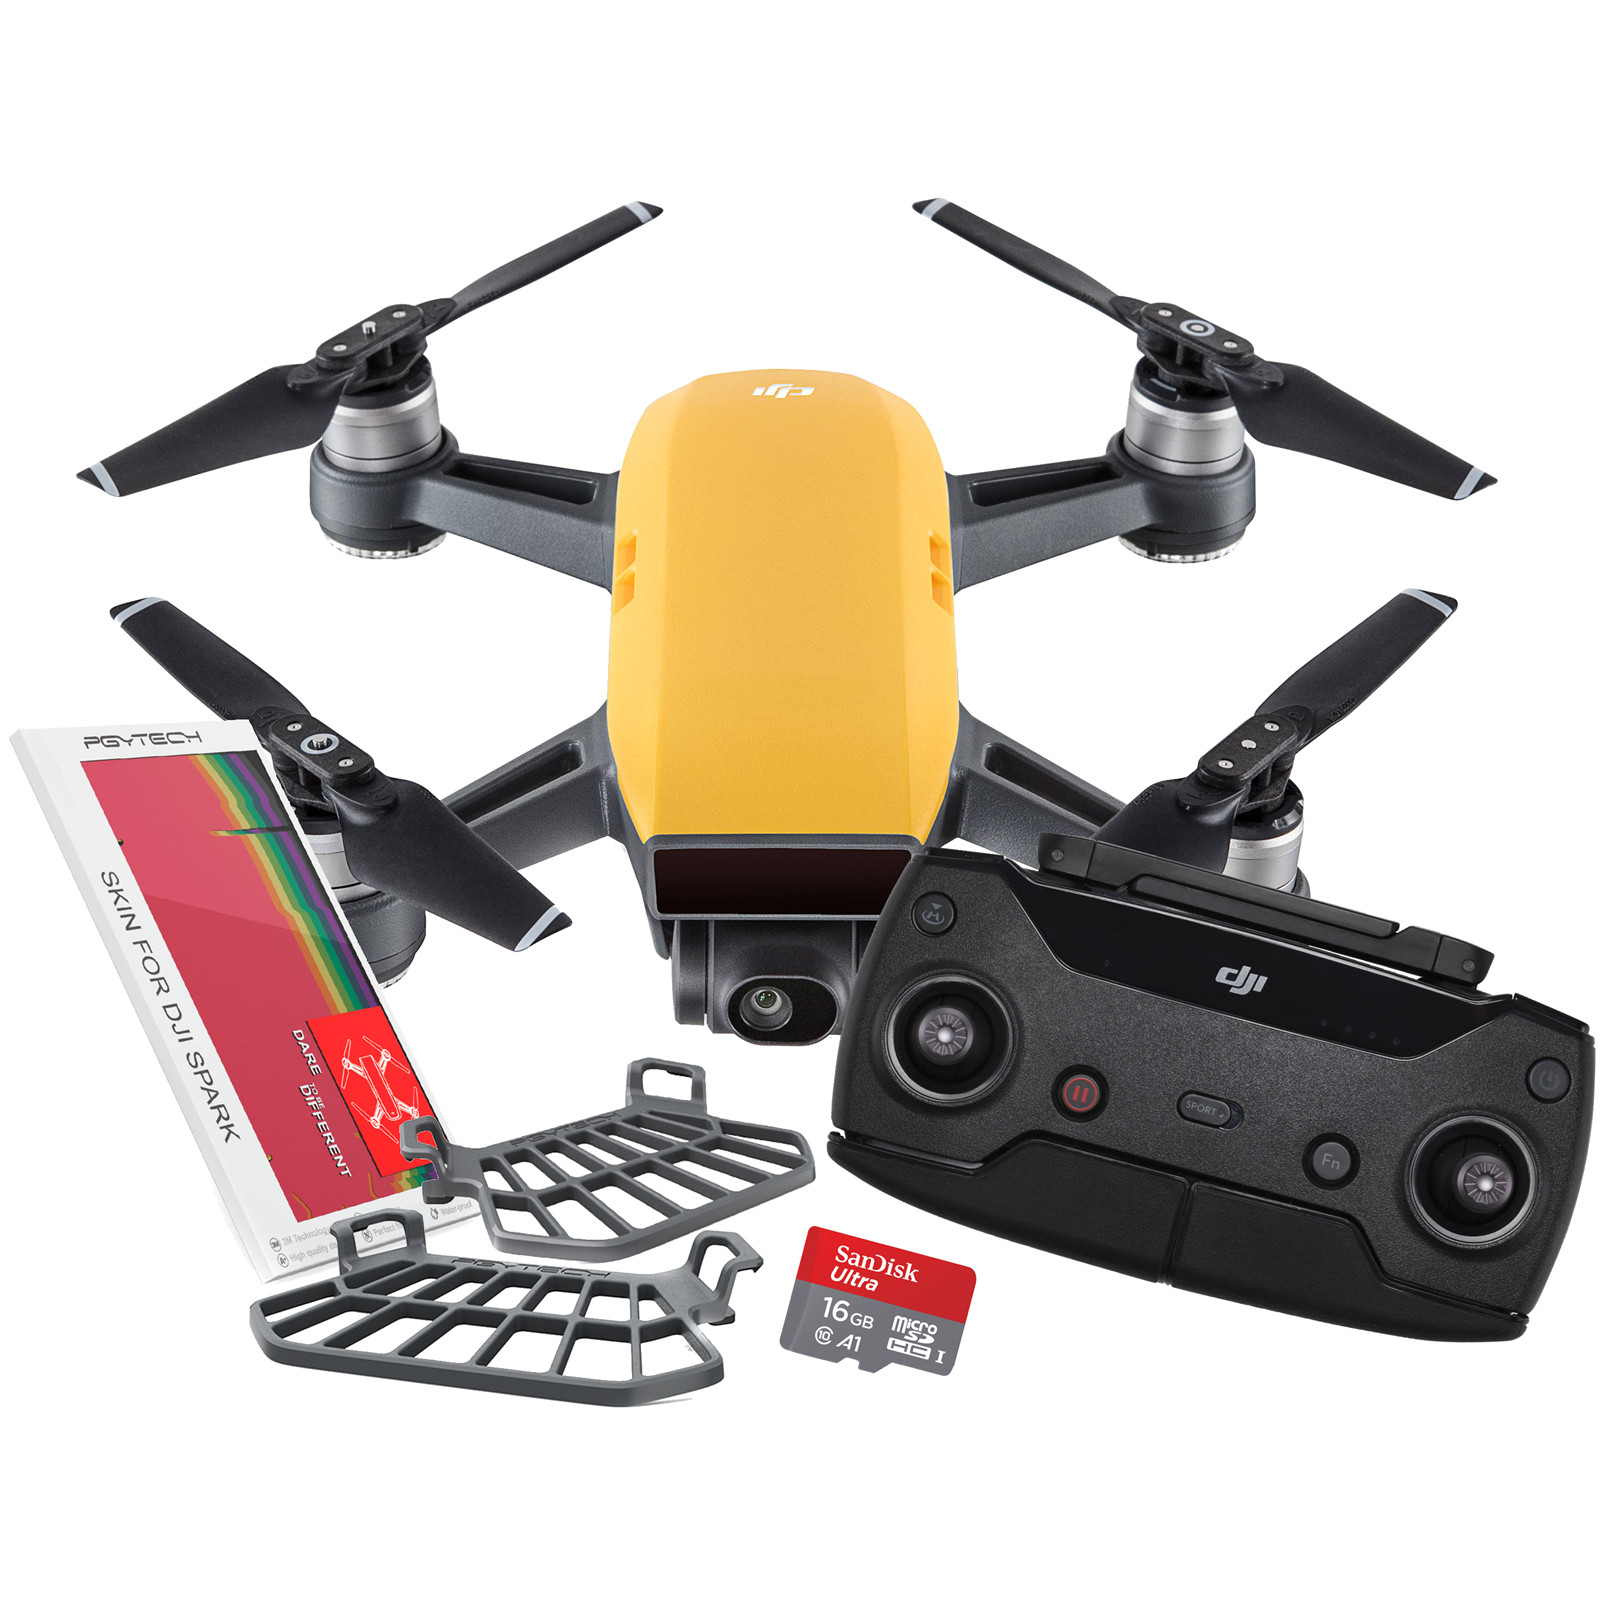 Buy The Dji Spark Drone Sunrise Yellow With Remote Controller Meadow Green Bonus Value Pack 16gb Micro Sd Colourful Skin Set For Hand Guard